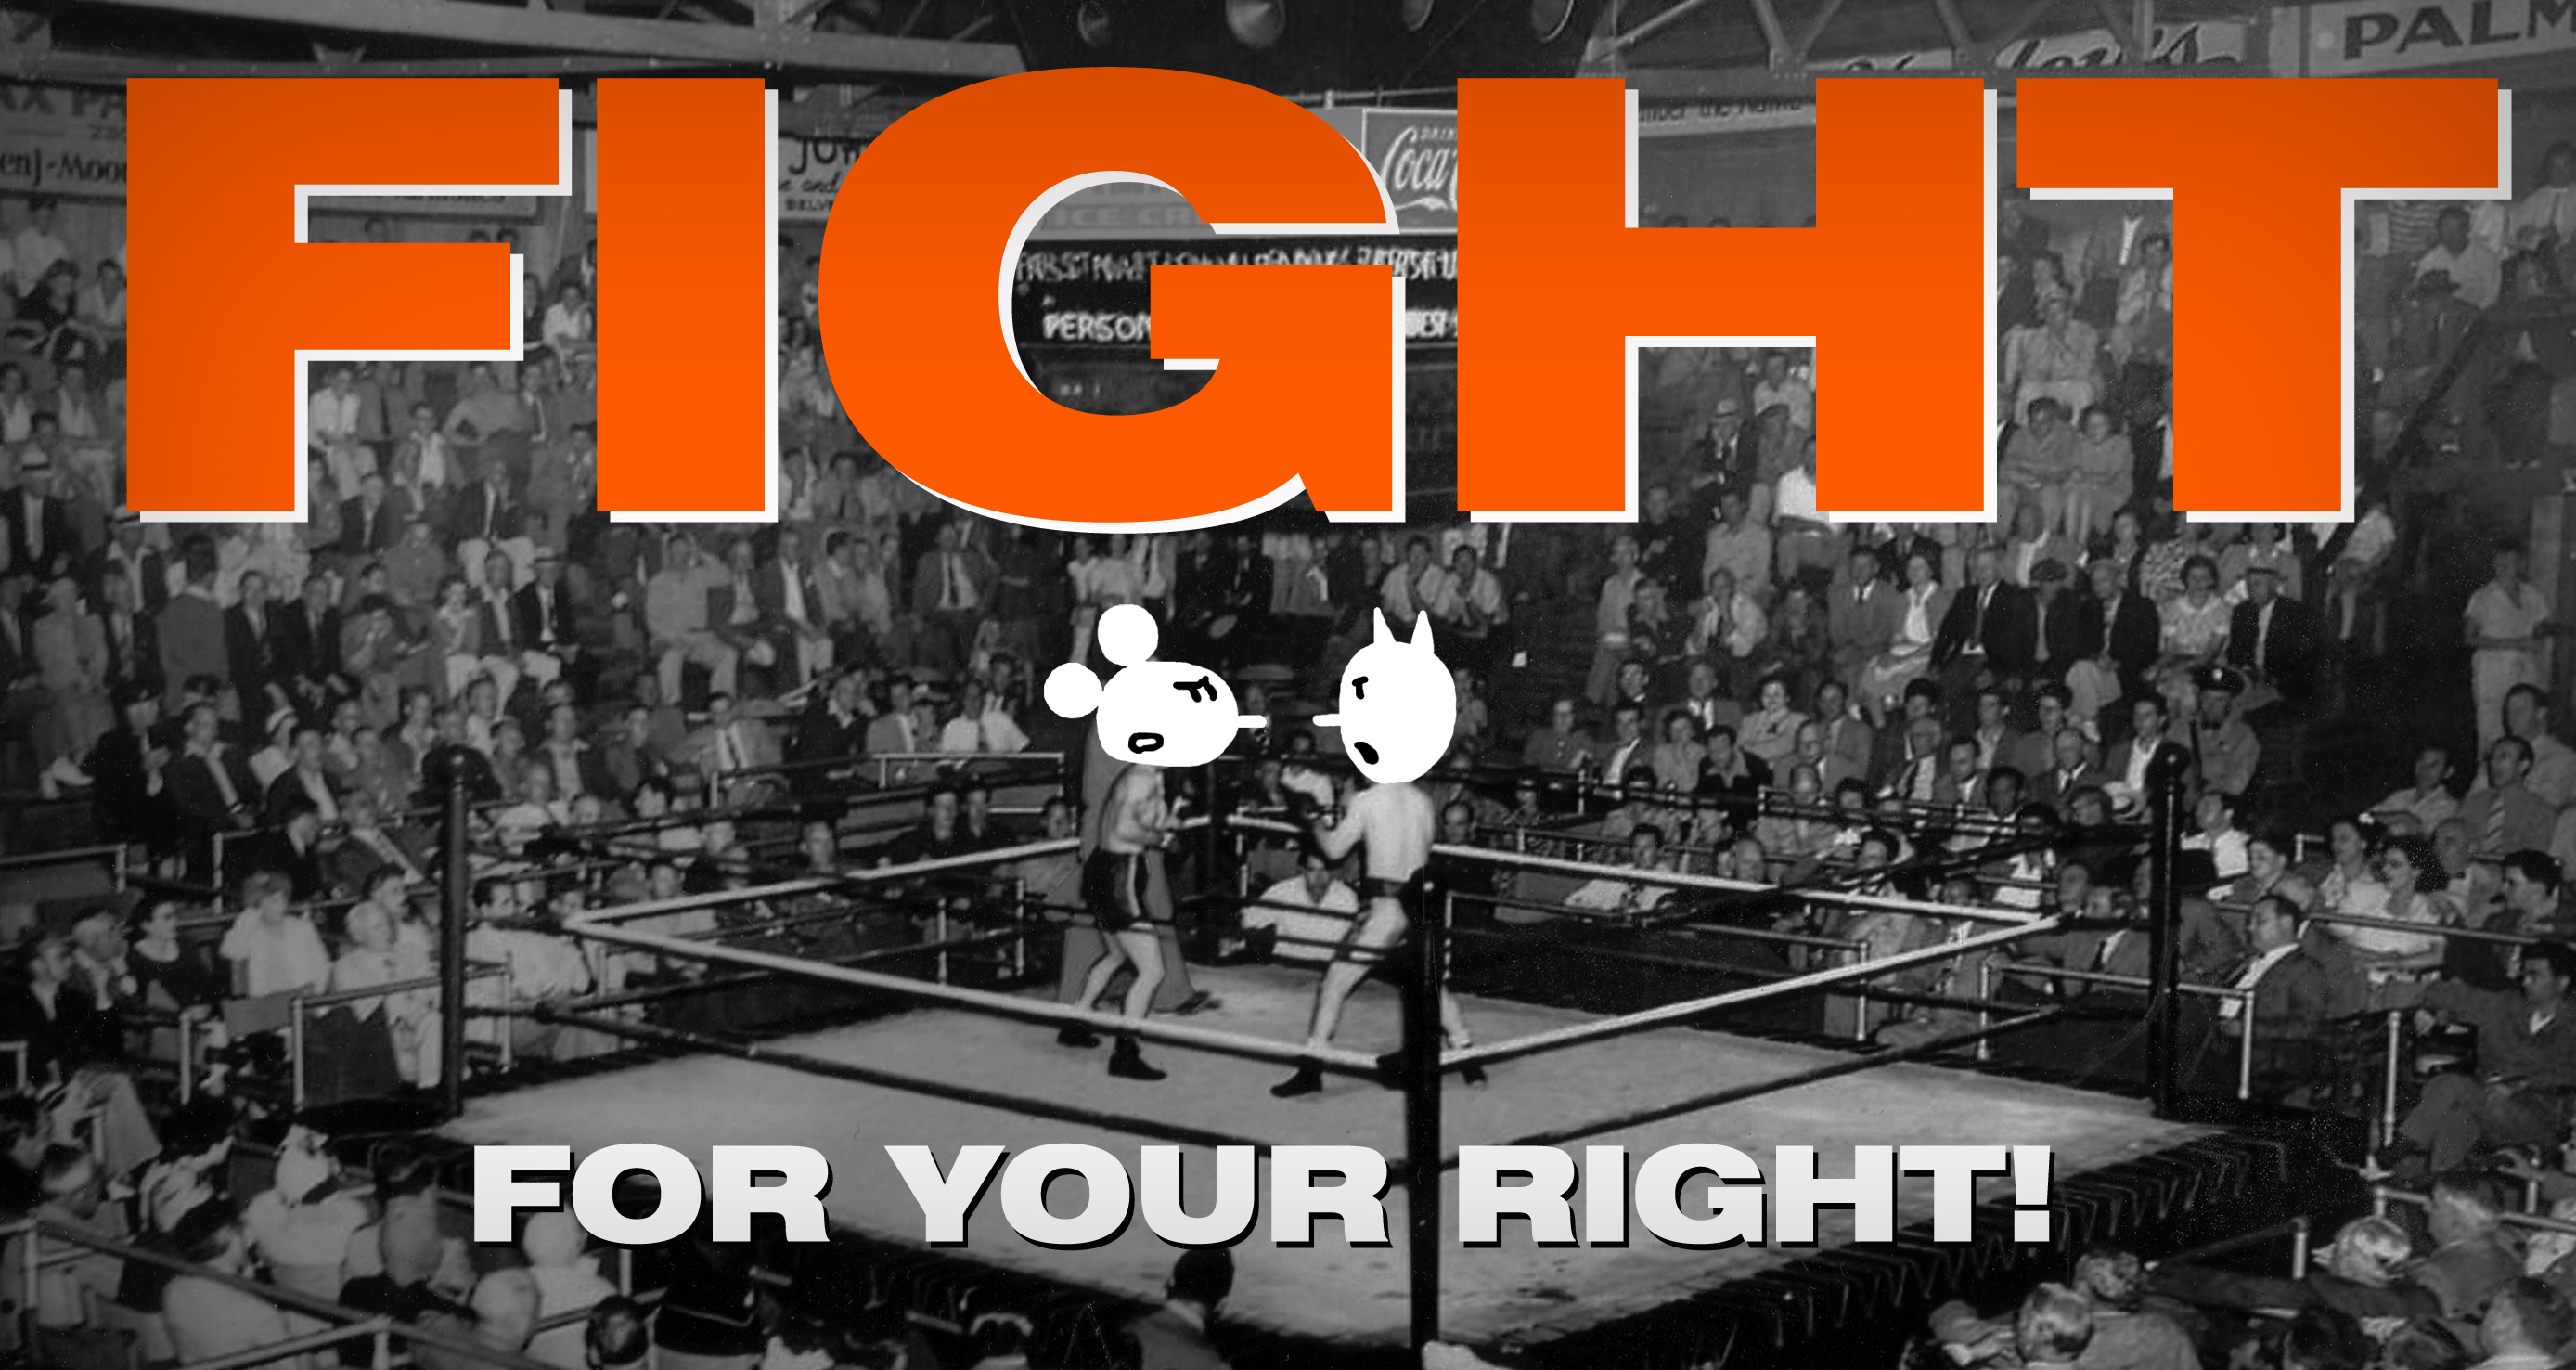 Unsere Gäste bei Fight for your Right Leipzig 2. Runde am 30.9.2016 um 19 Uhr